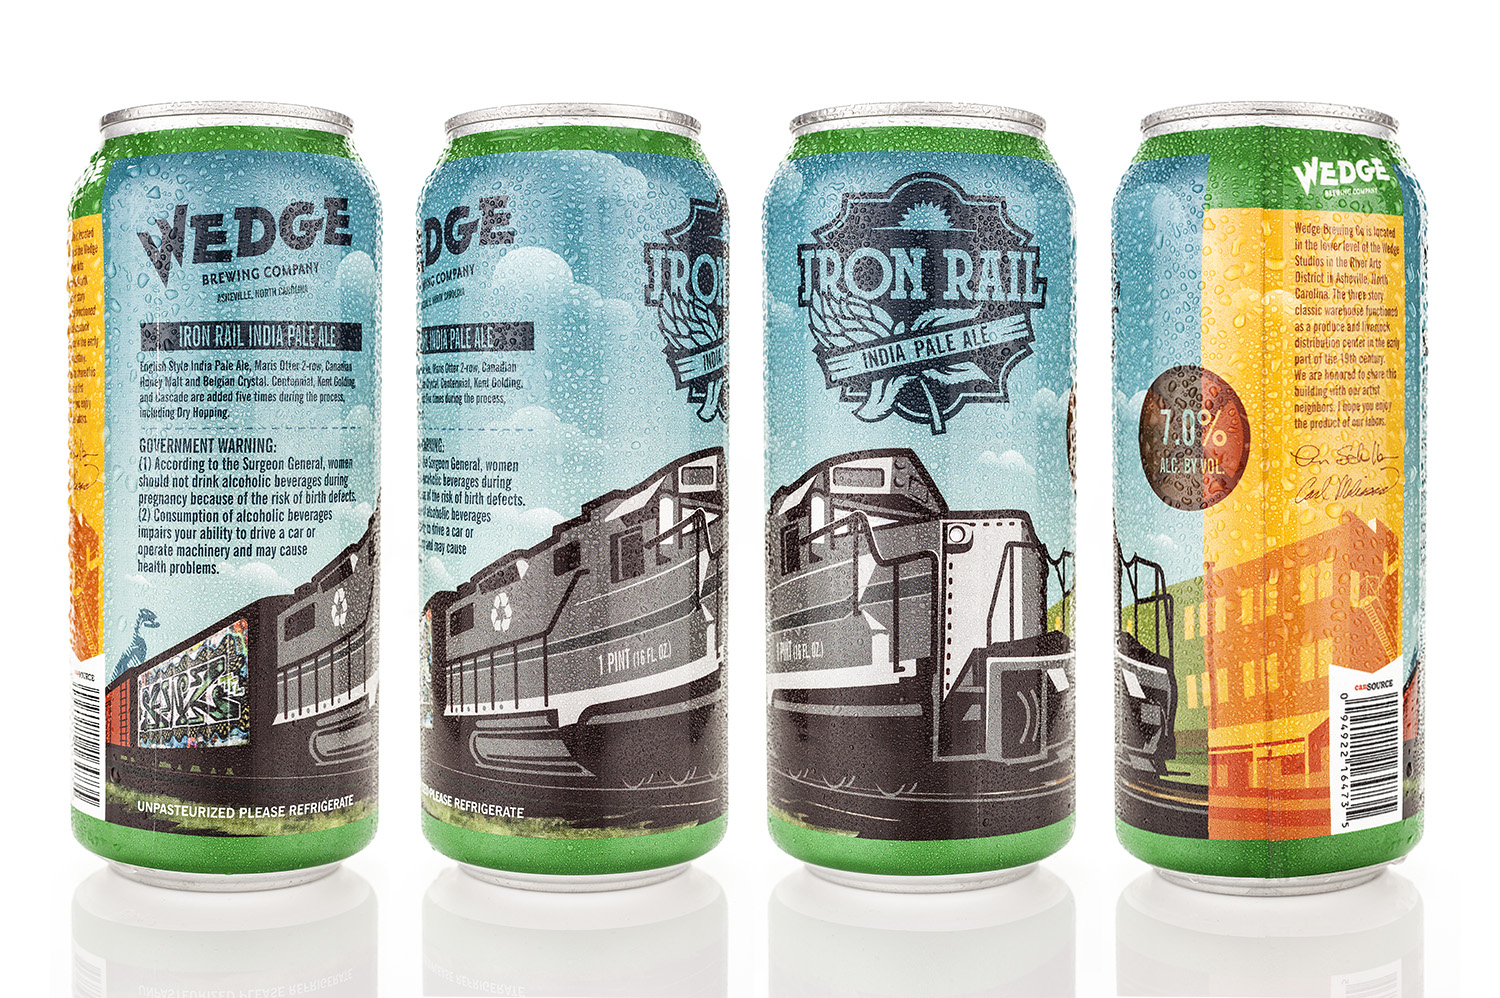 Product photography studio_Studio photography_Asheville nc_The Wedge Iron Rail IPA_TAPstudio.jpg